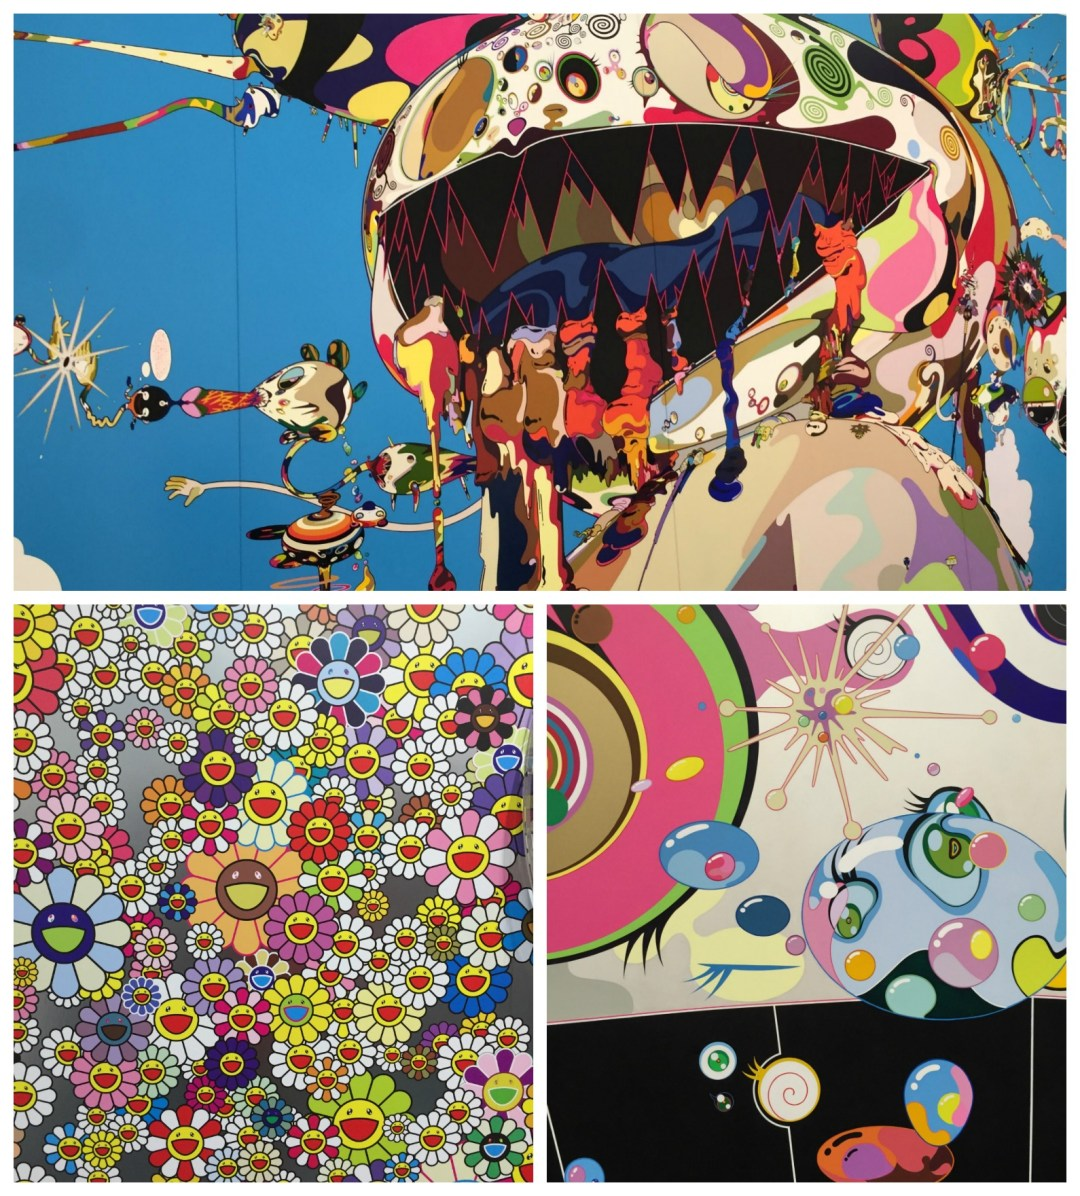 MCA Takashi Murakami - More Work